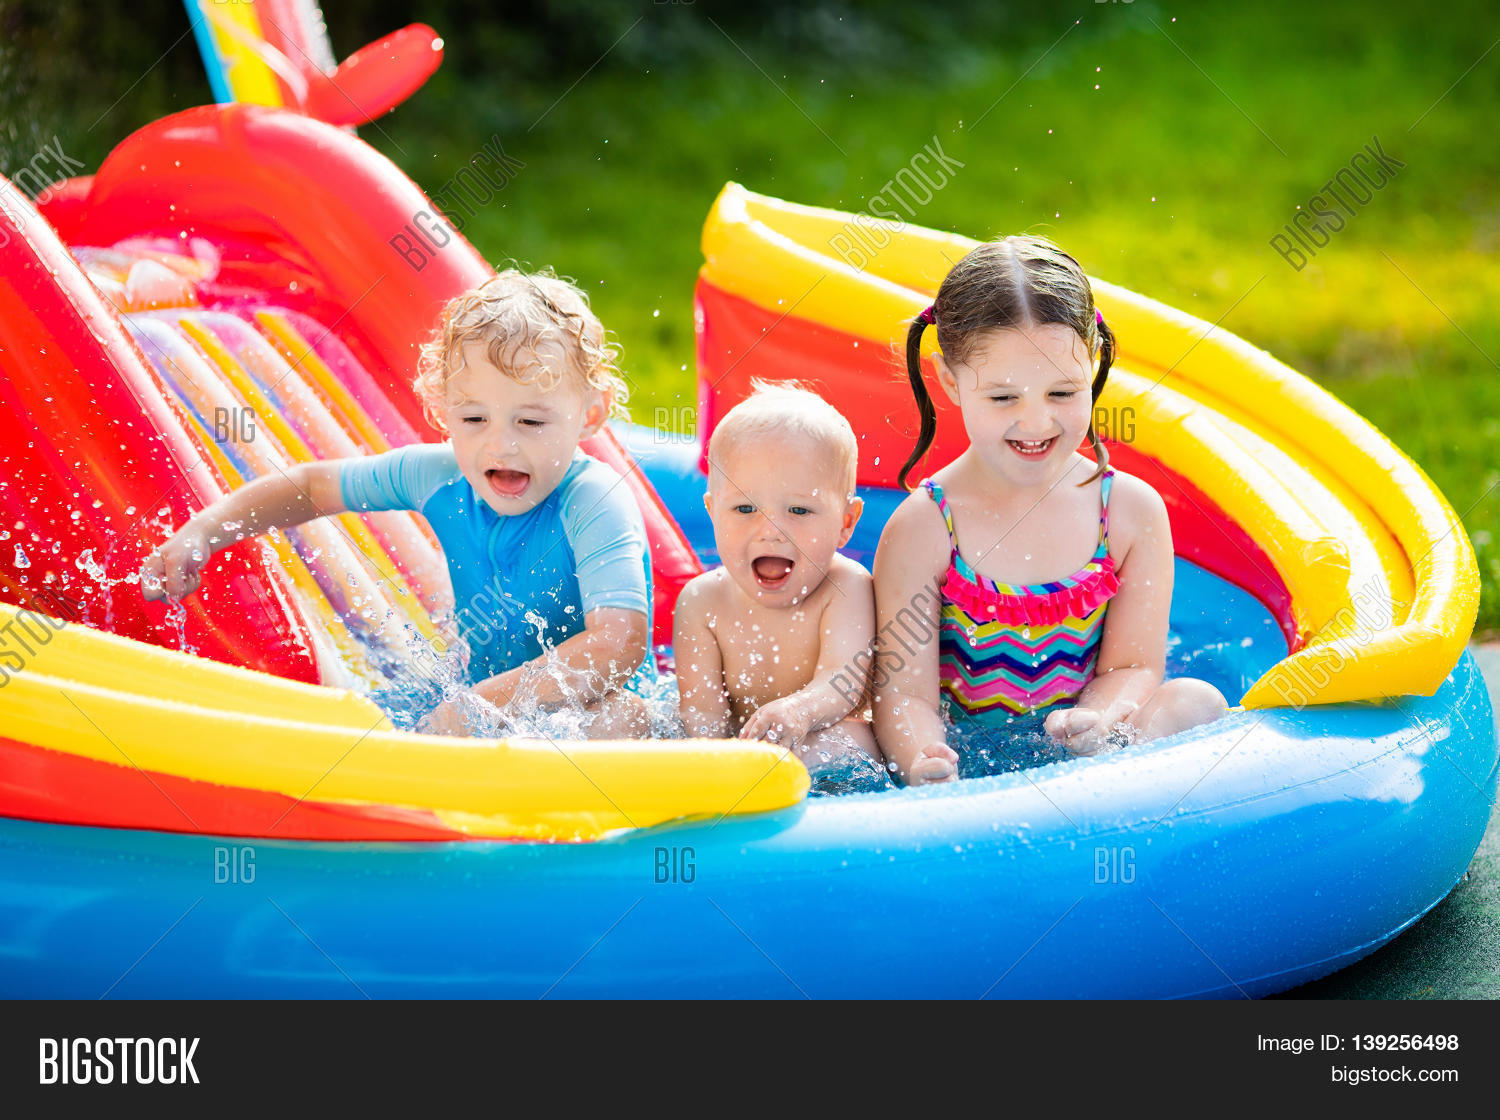 Children playing inflatable baby image photo bigstock for Children s garden pools